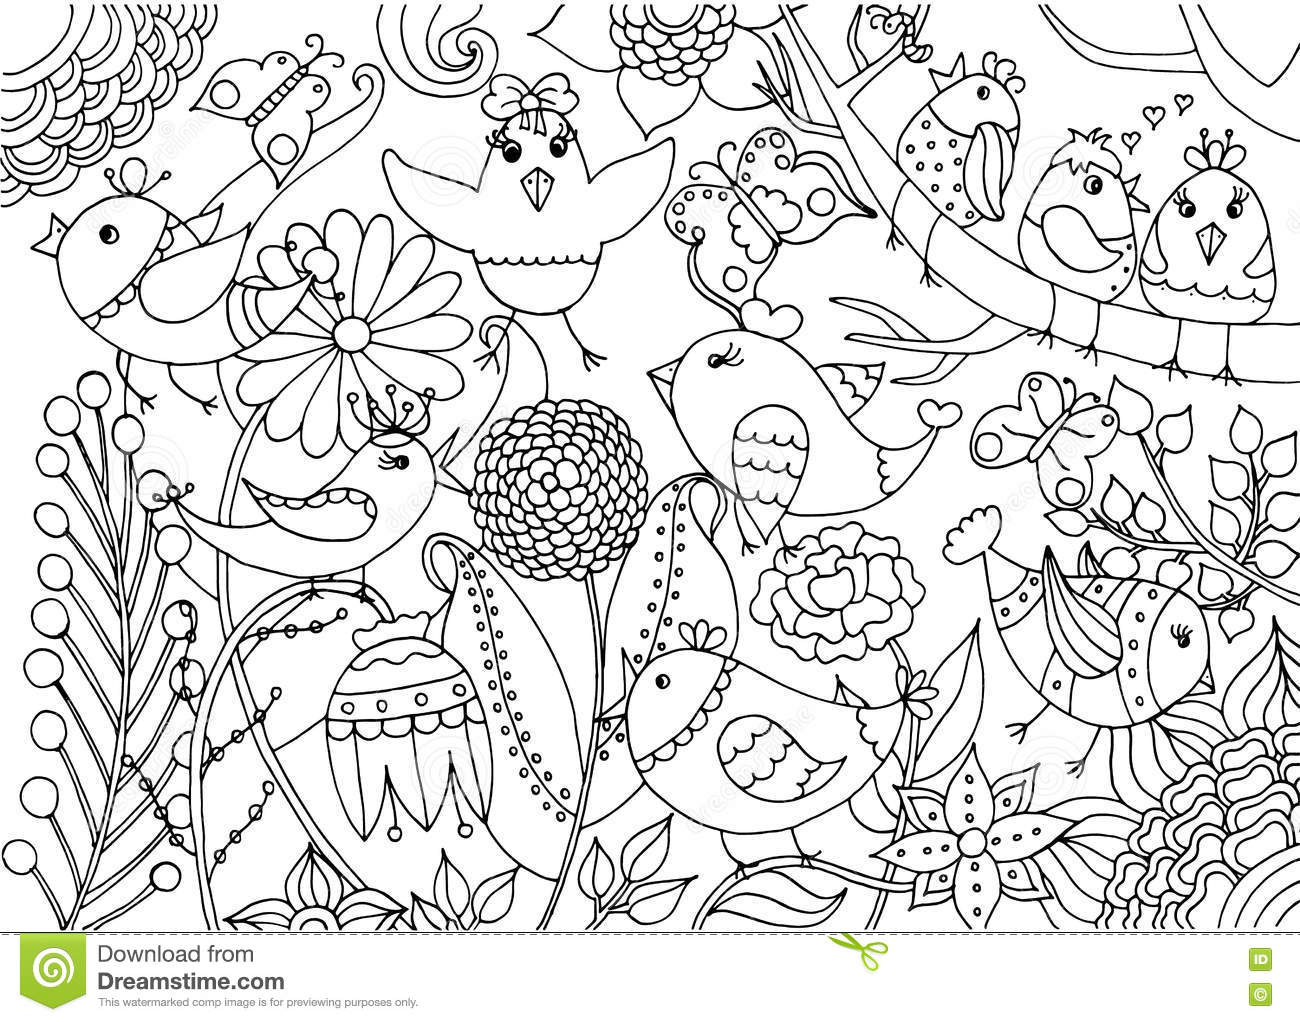 birdsandblooms coloring book birds and flowers coloring page stock vector coloring birdsandblooms book